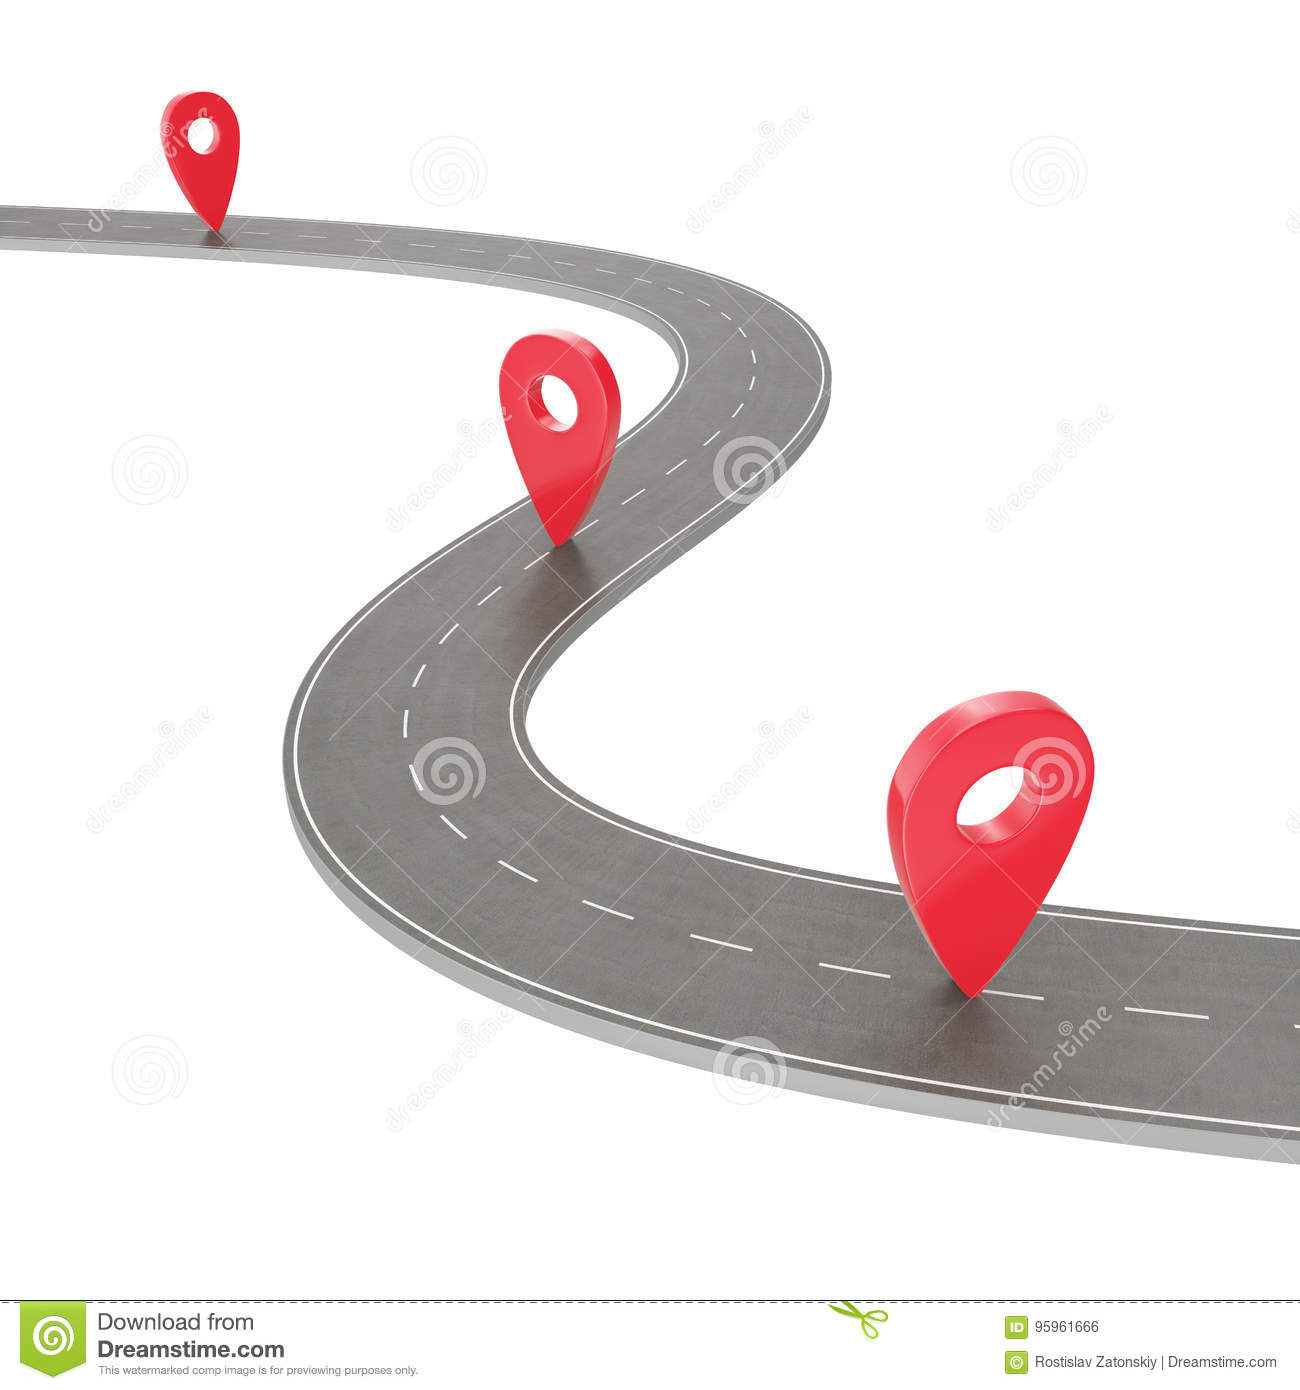 Road trip and Journey route. Winding Road on a white background with Pin Pointer. Road way location infographic template